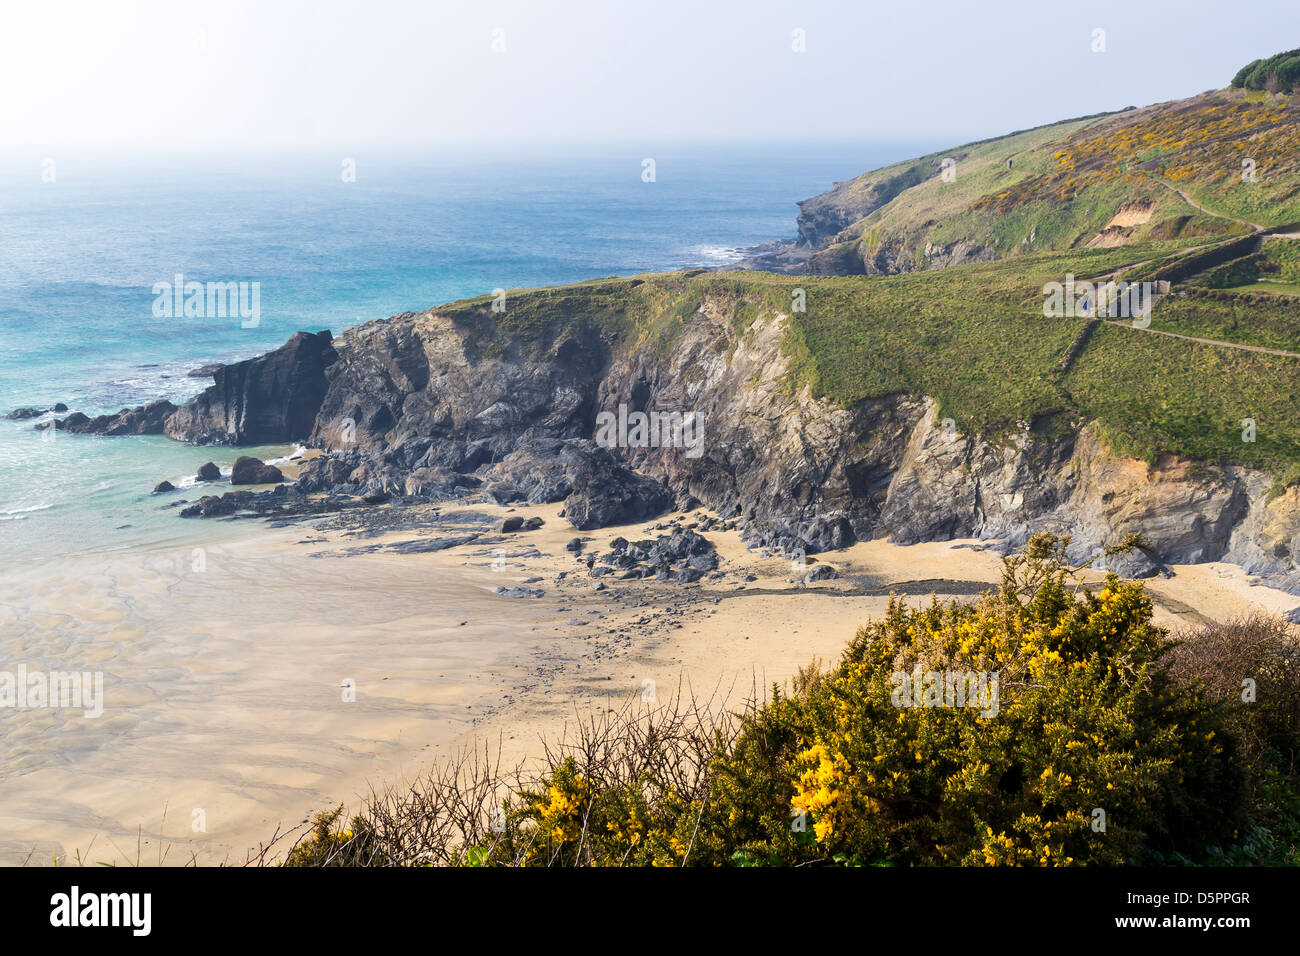 Overlooking the beach at Polurrian Cove Mullion Cornwall England UK - Stock Image